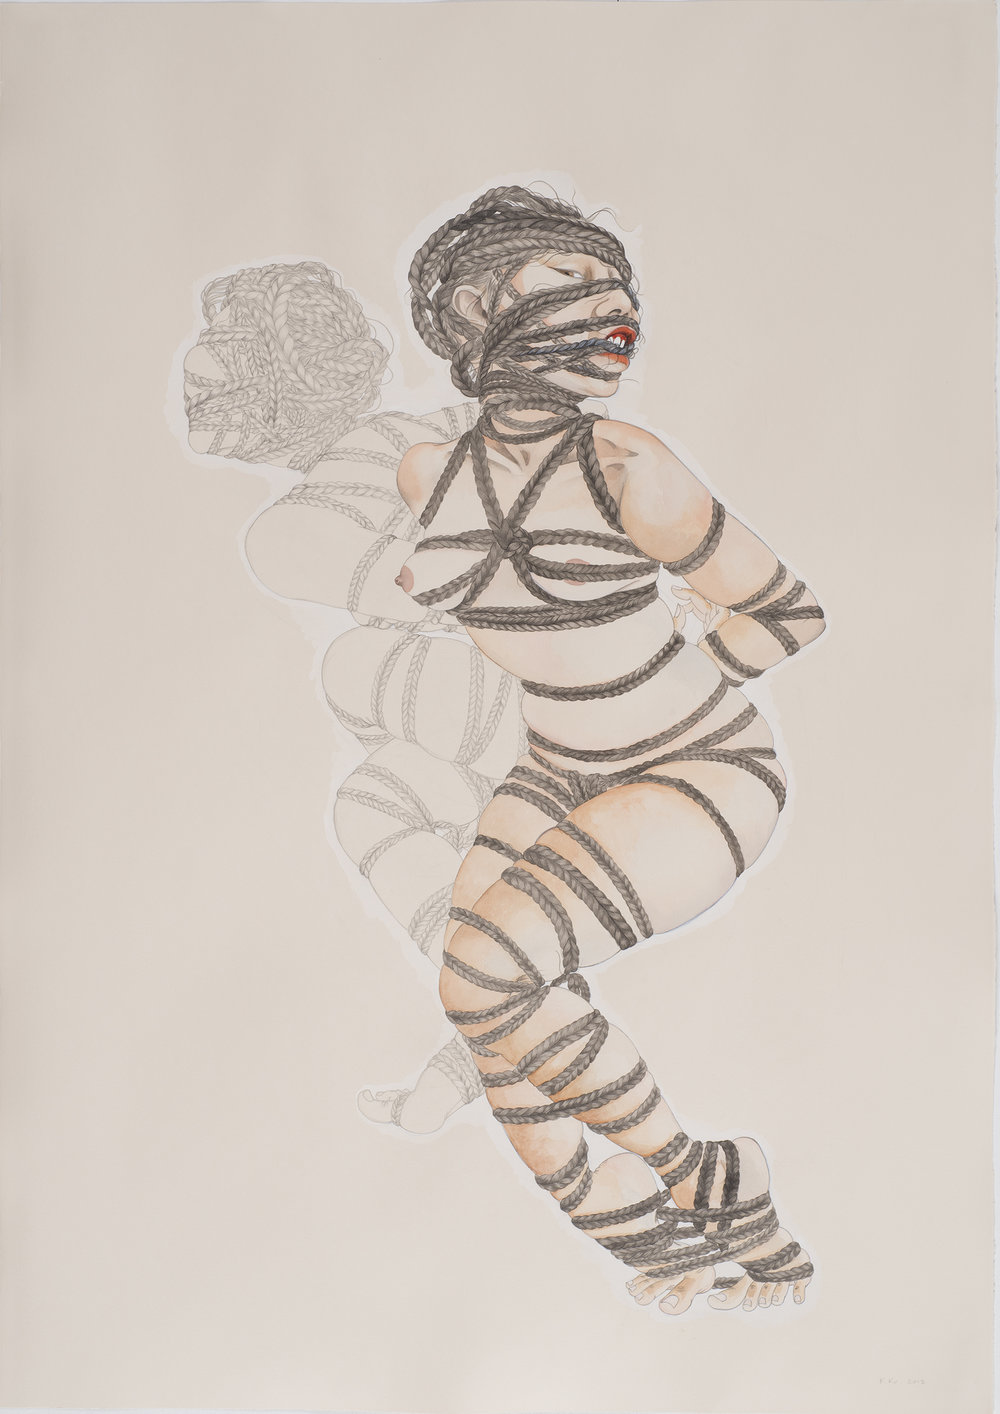 Bound , 2013 Graphite, watercolor, ink on ivory Fabriana Rosaspina 39 x 27.5 inches Photo: Bill Orcutt